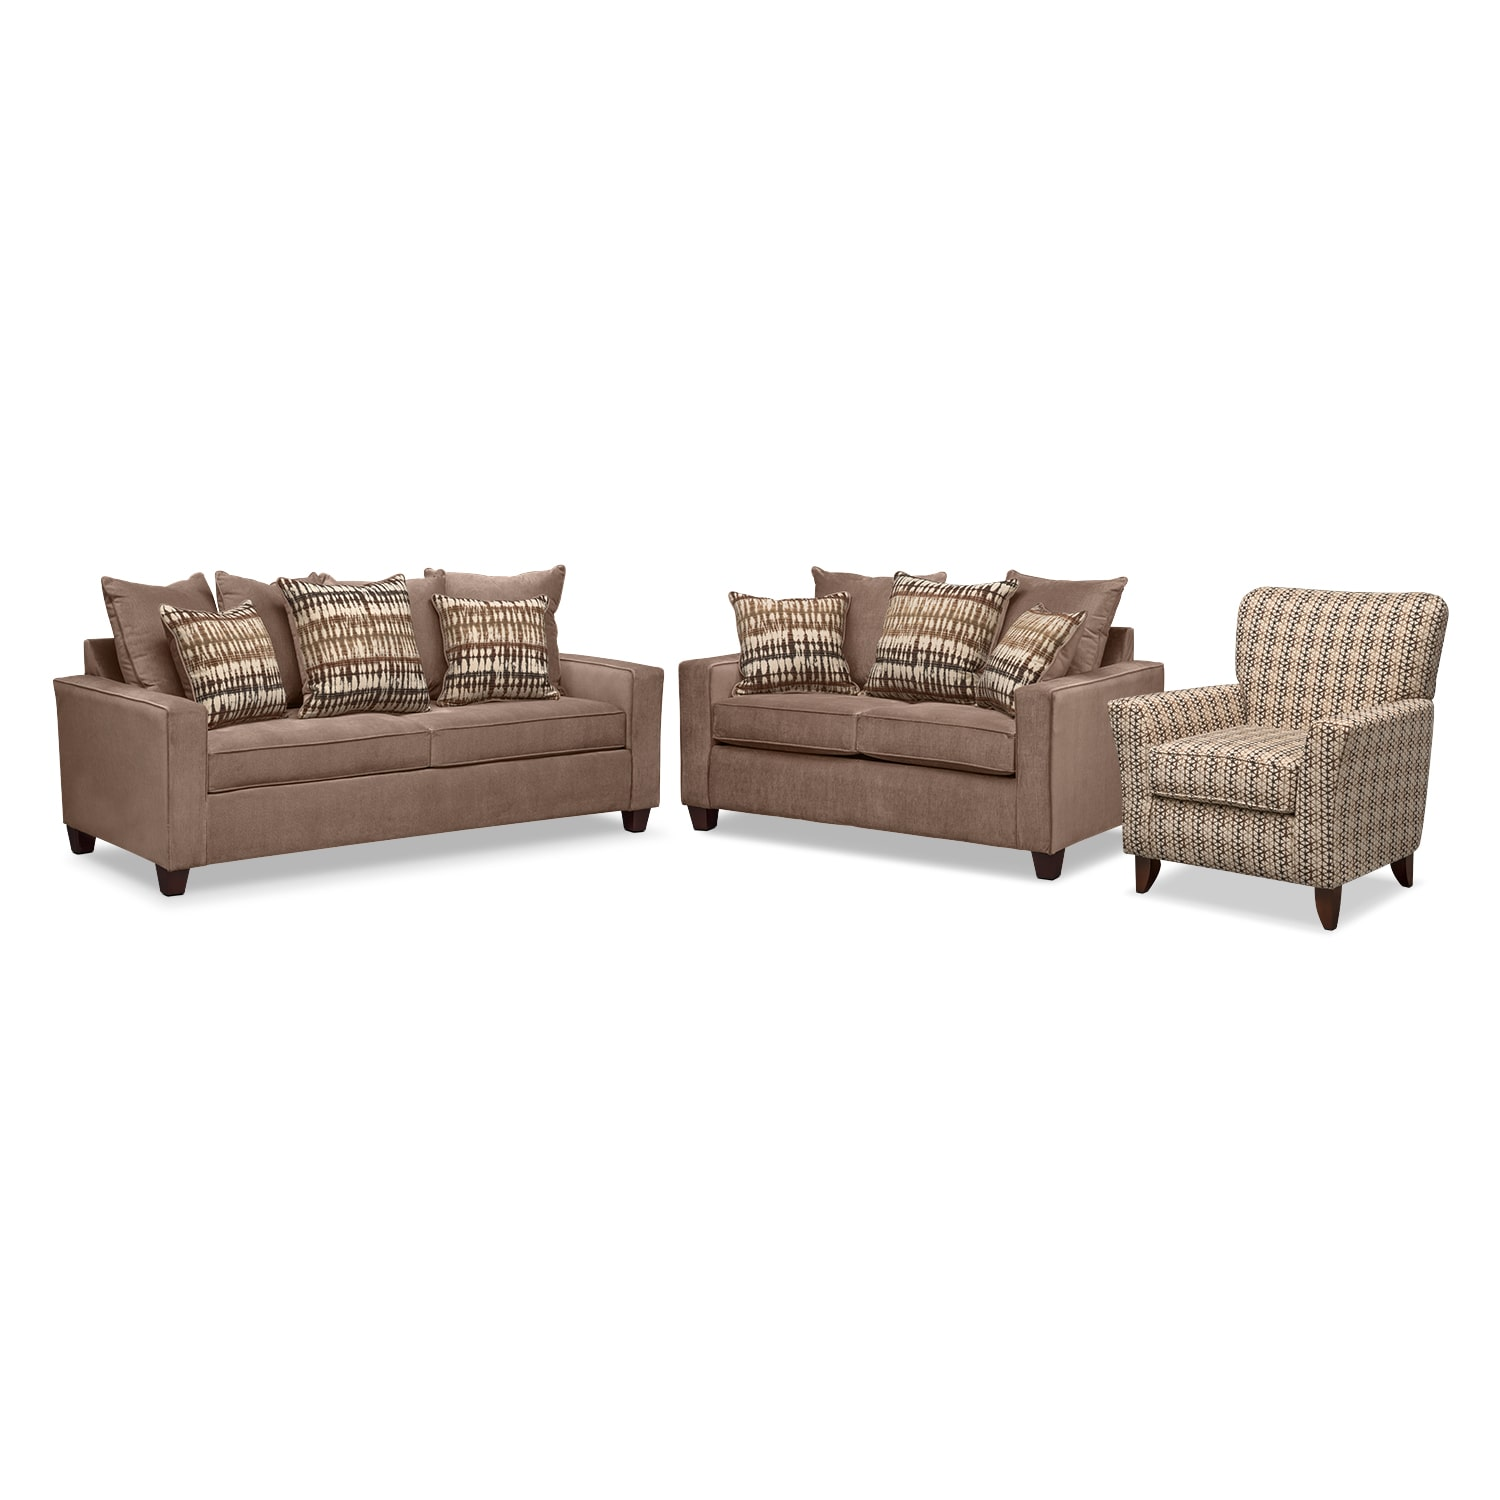 Bryden Sofa Chocolate